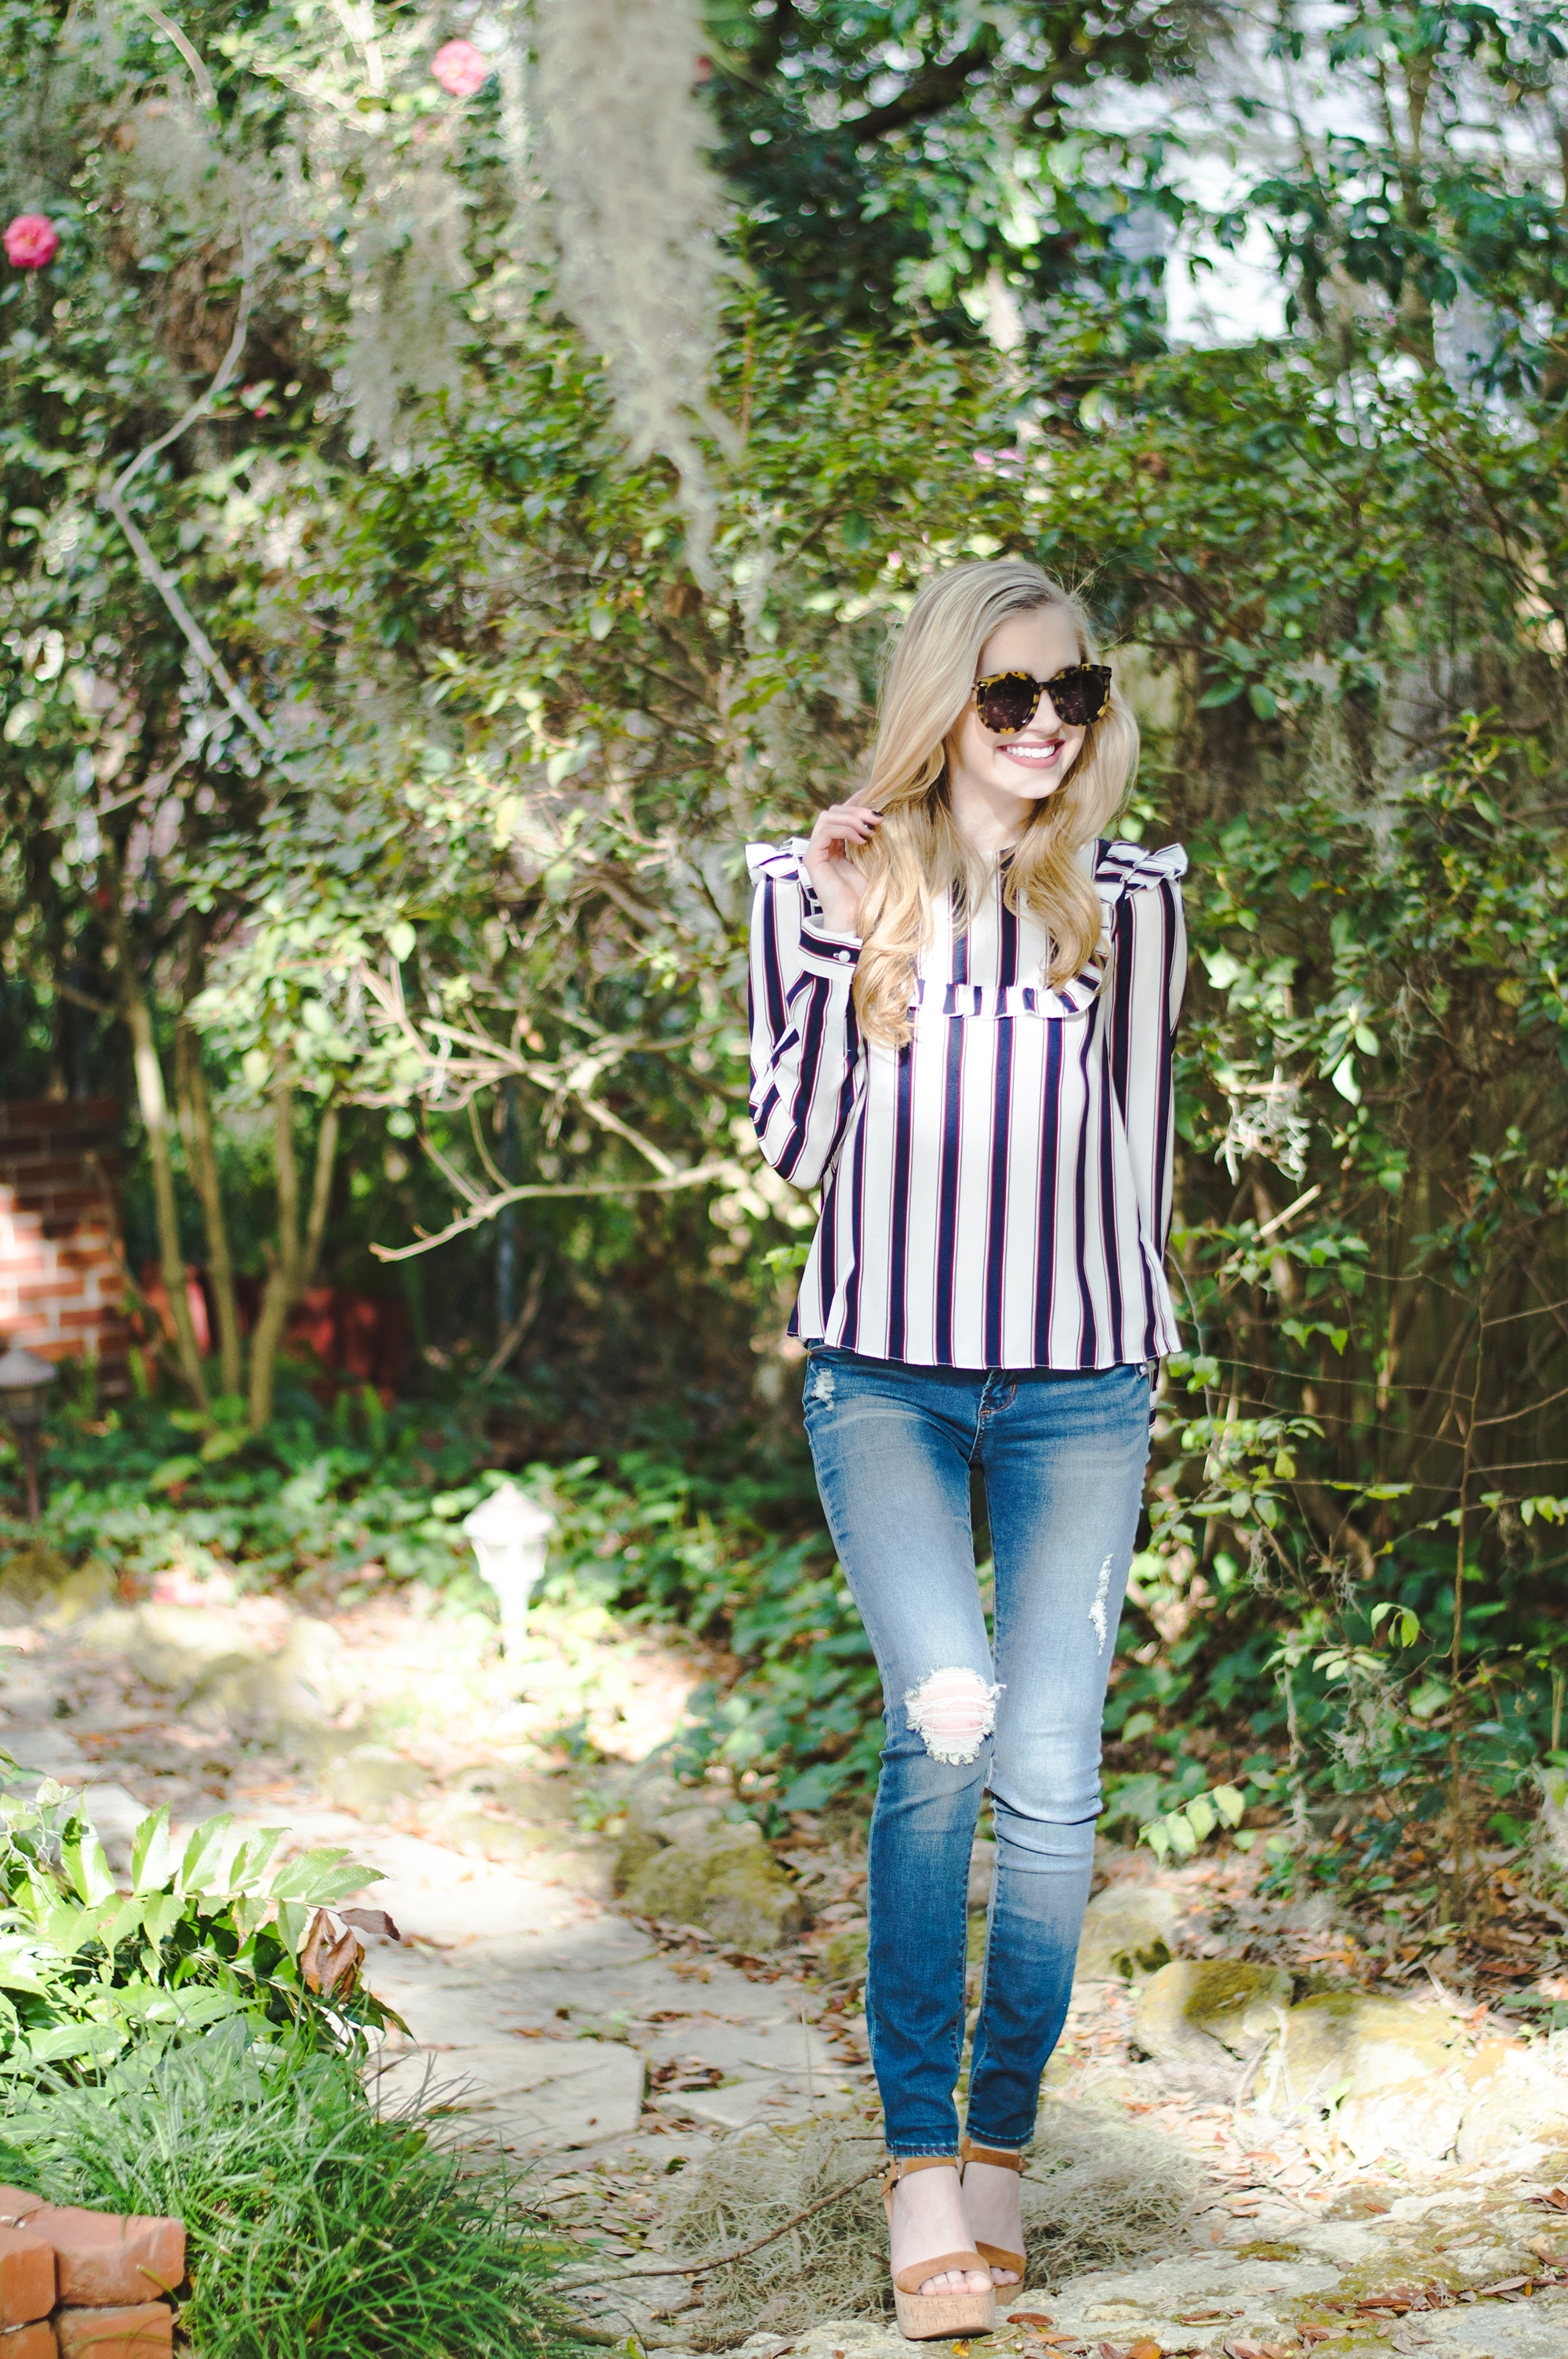 styelled-blog-elle-elisabeth-fashion-style-blogger-fblogger-like-to-know-it-articles-of-society-english-factory-karen-walker-dolce-vita-shop-smac-stripes-08